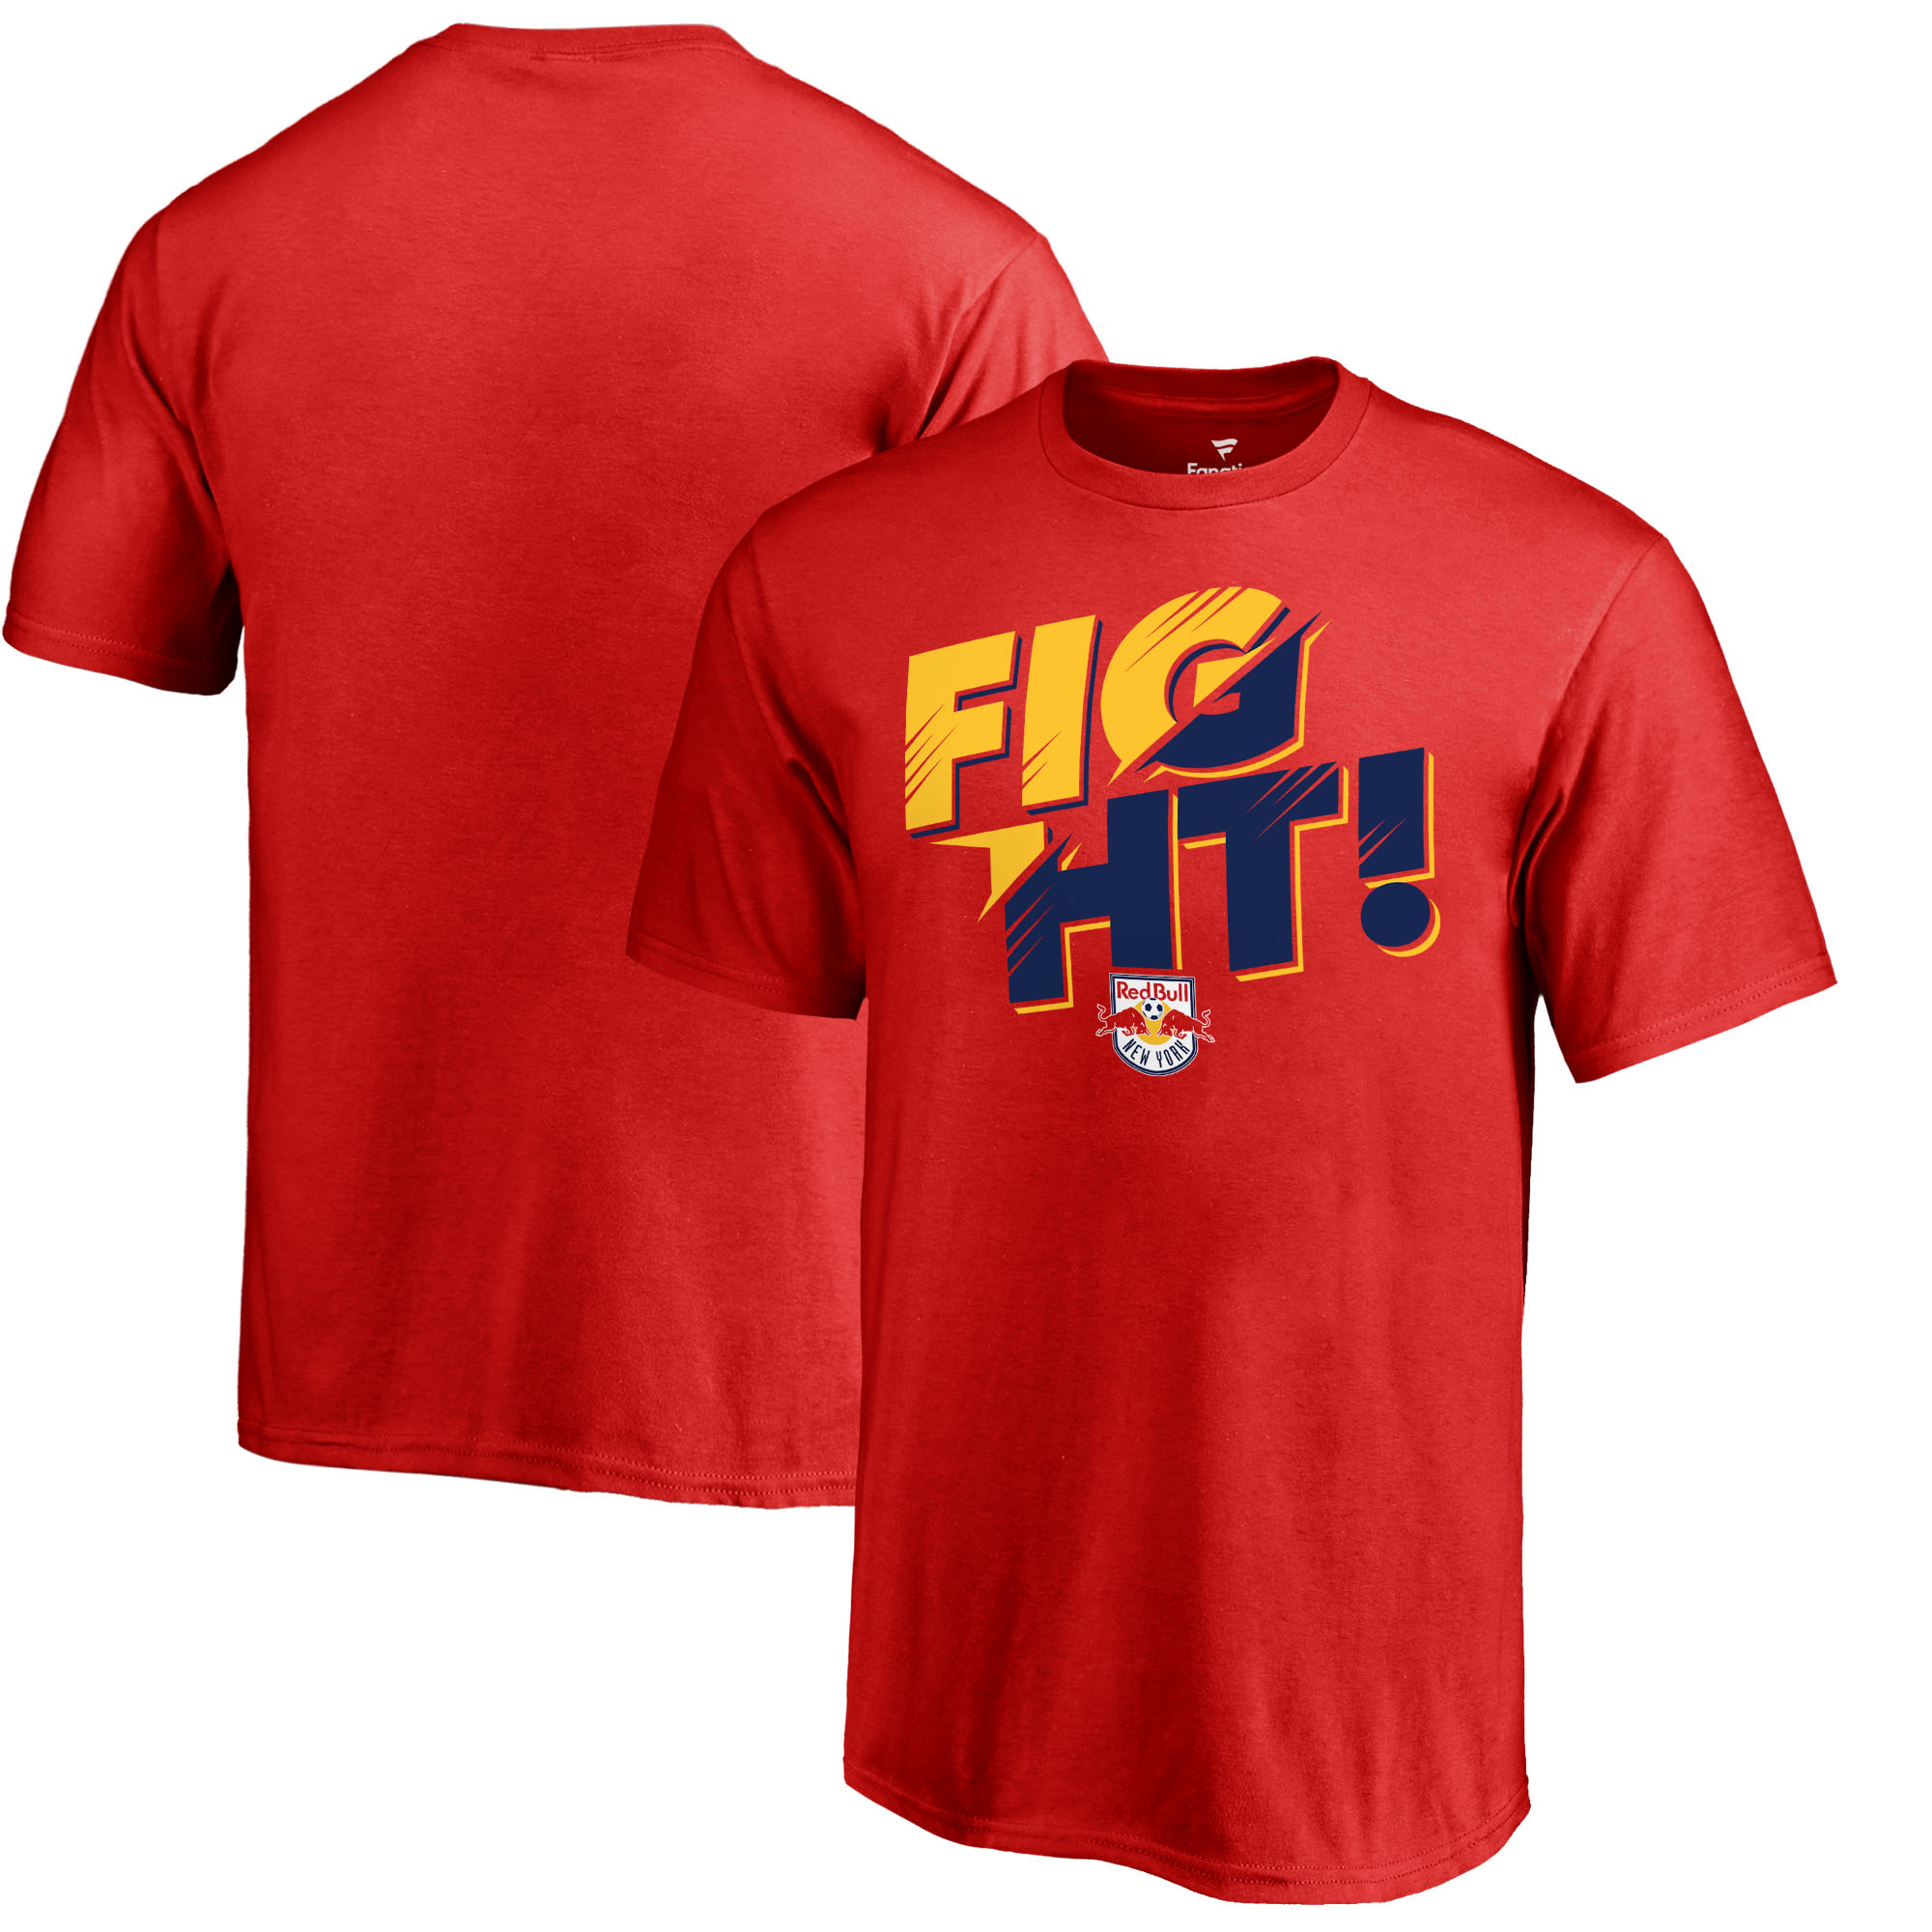 New York Red Bulls Fanatics Branded Youth Hometown Collection Fight T-Shirt - Red